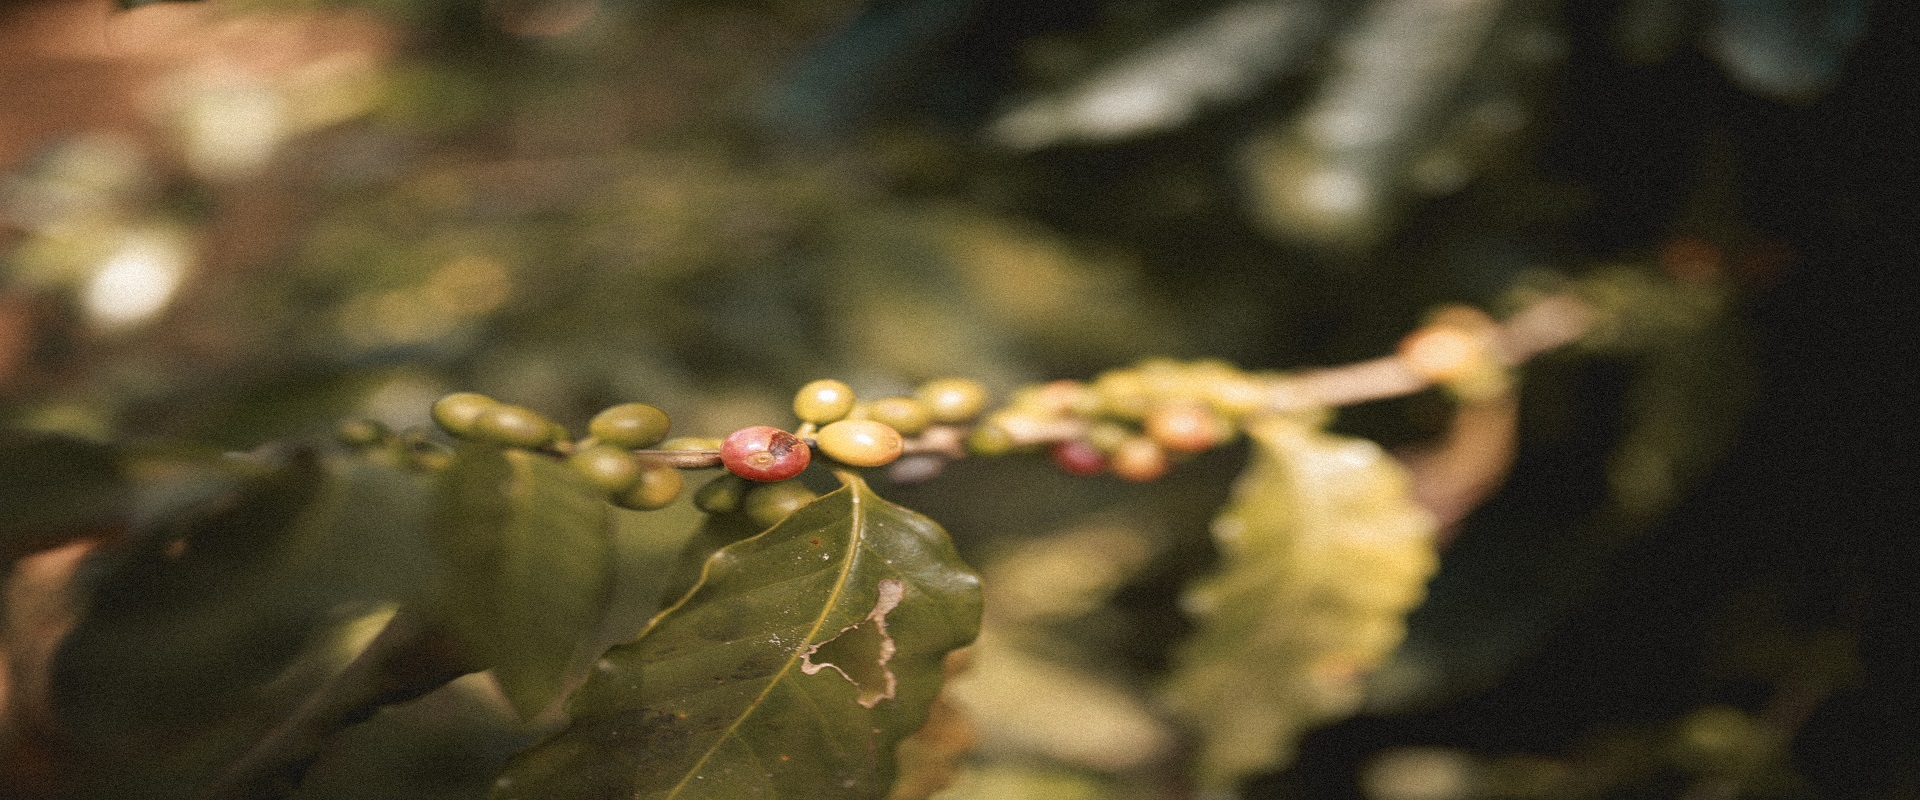 Scientists Rediscover A Rare, Wild Species That Could Save Coffee From Climate Change